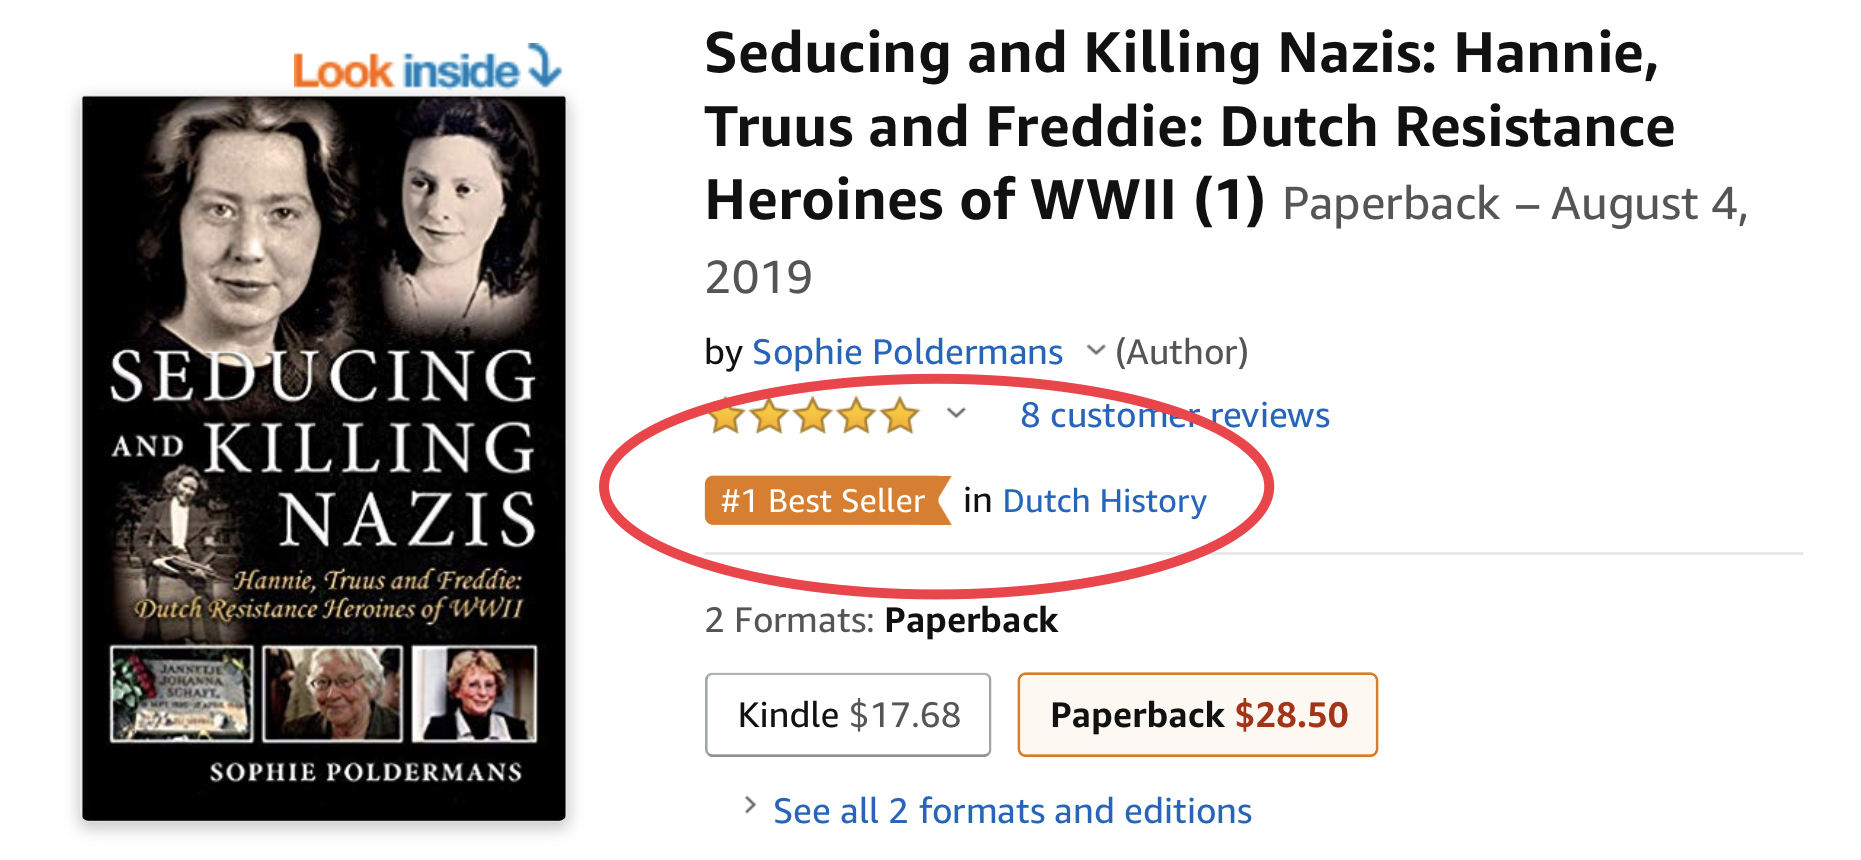 Seducing and Killing Nazis # 1 Best Seller on Amazon!